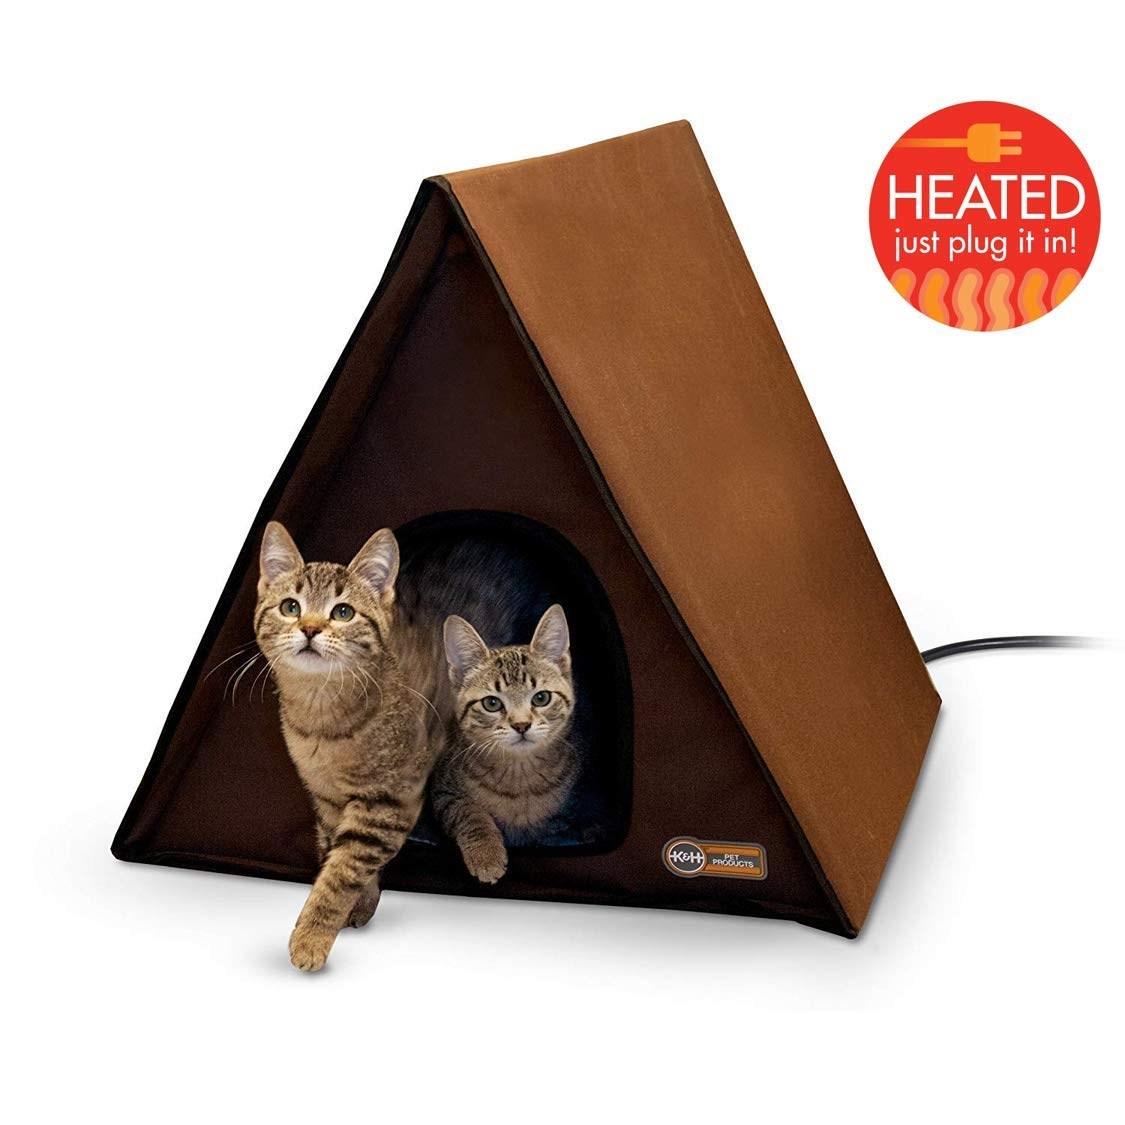 K&H PET PRODUCTS K&H Manufacturing A-Frame Multi-Kitty Outdoor Heated Kitty House